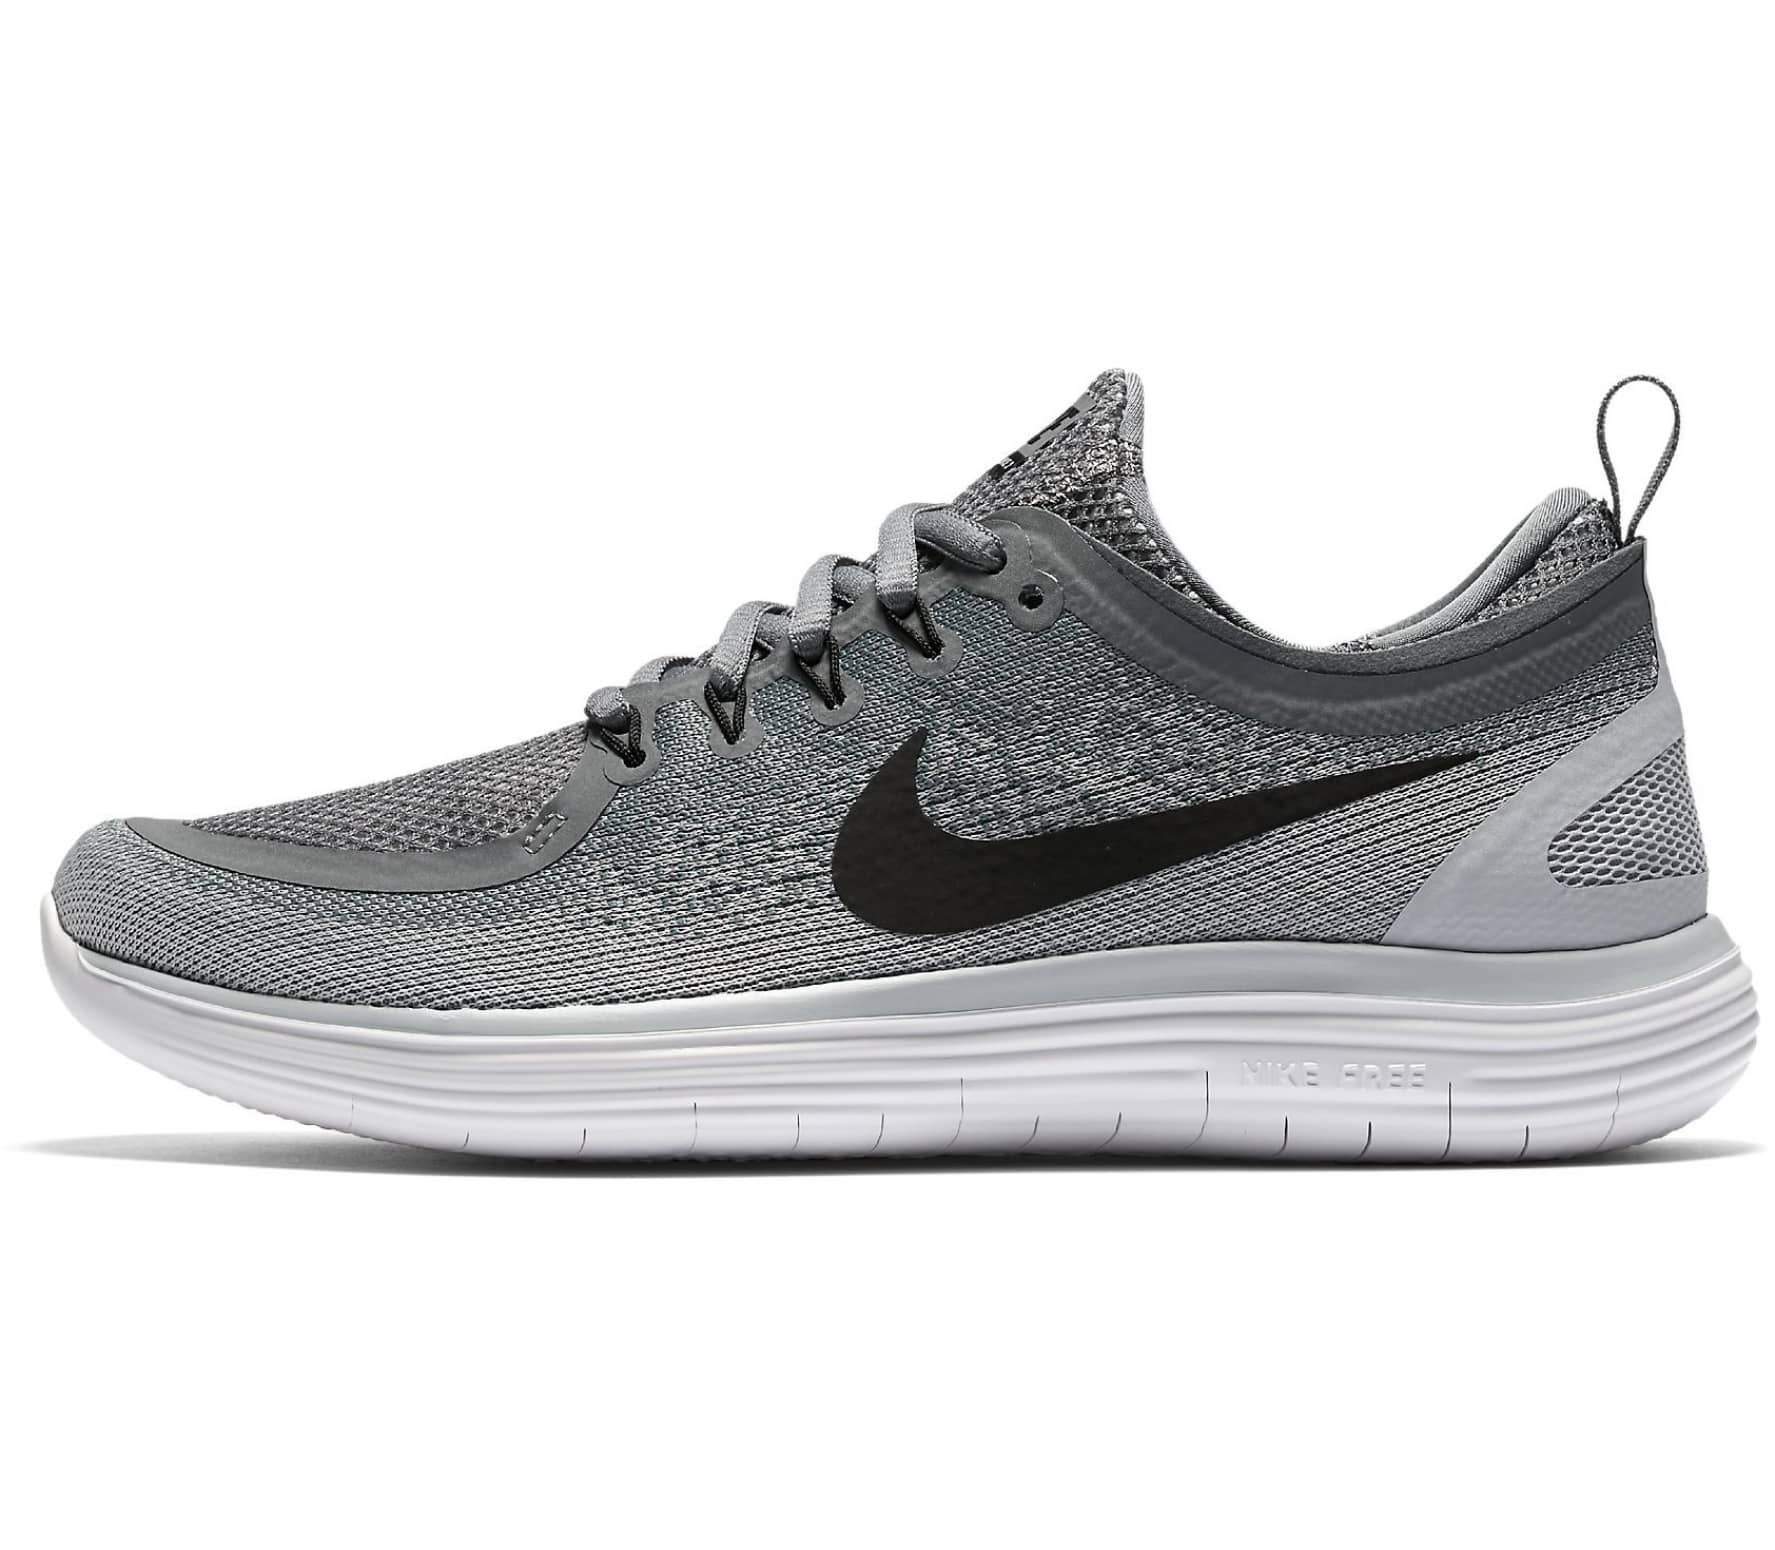 Nike - Free RN Distance 2 women s running shoes (grey white) - buy ... 98c1a74c20828